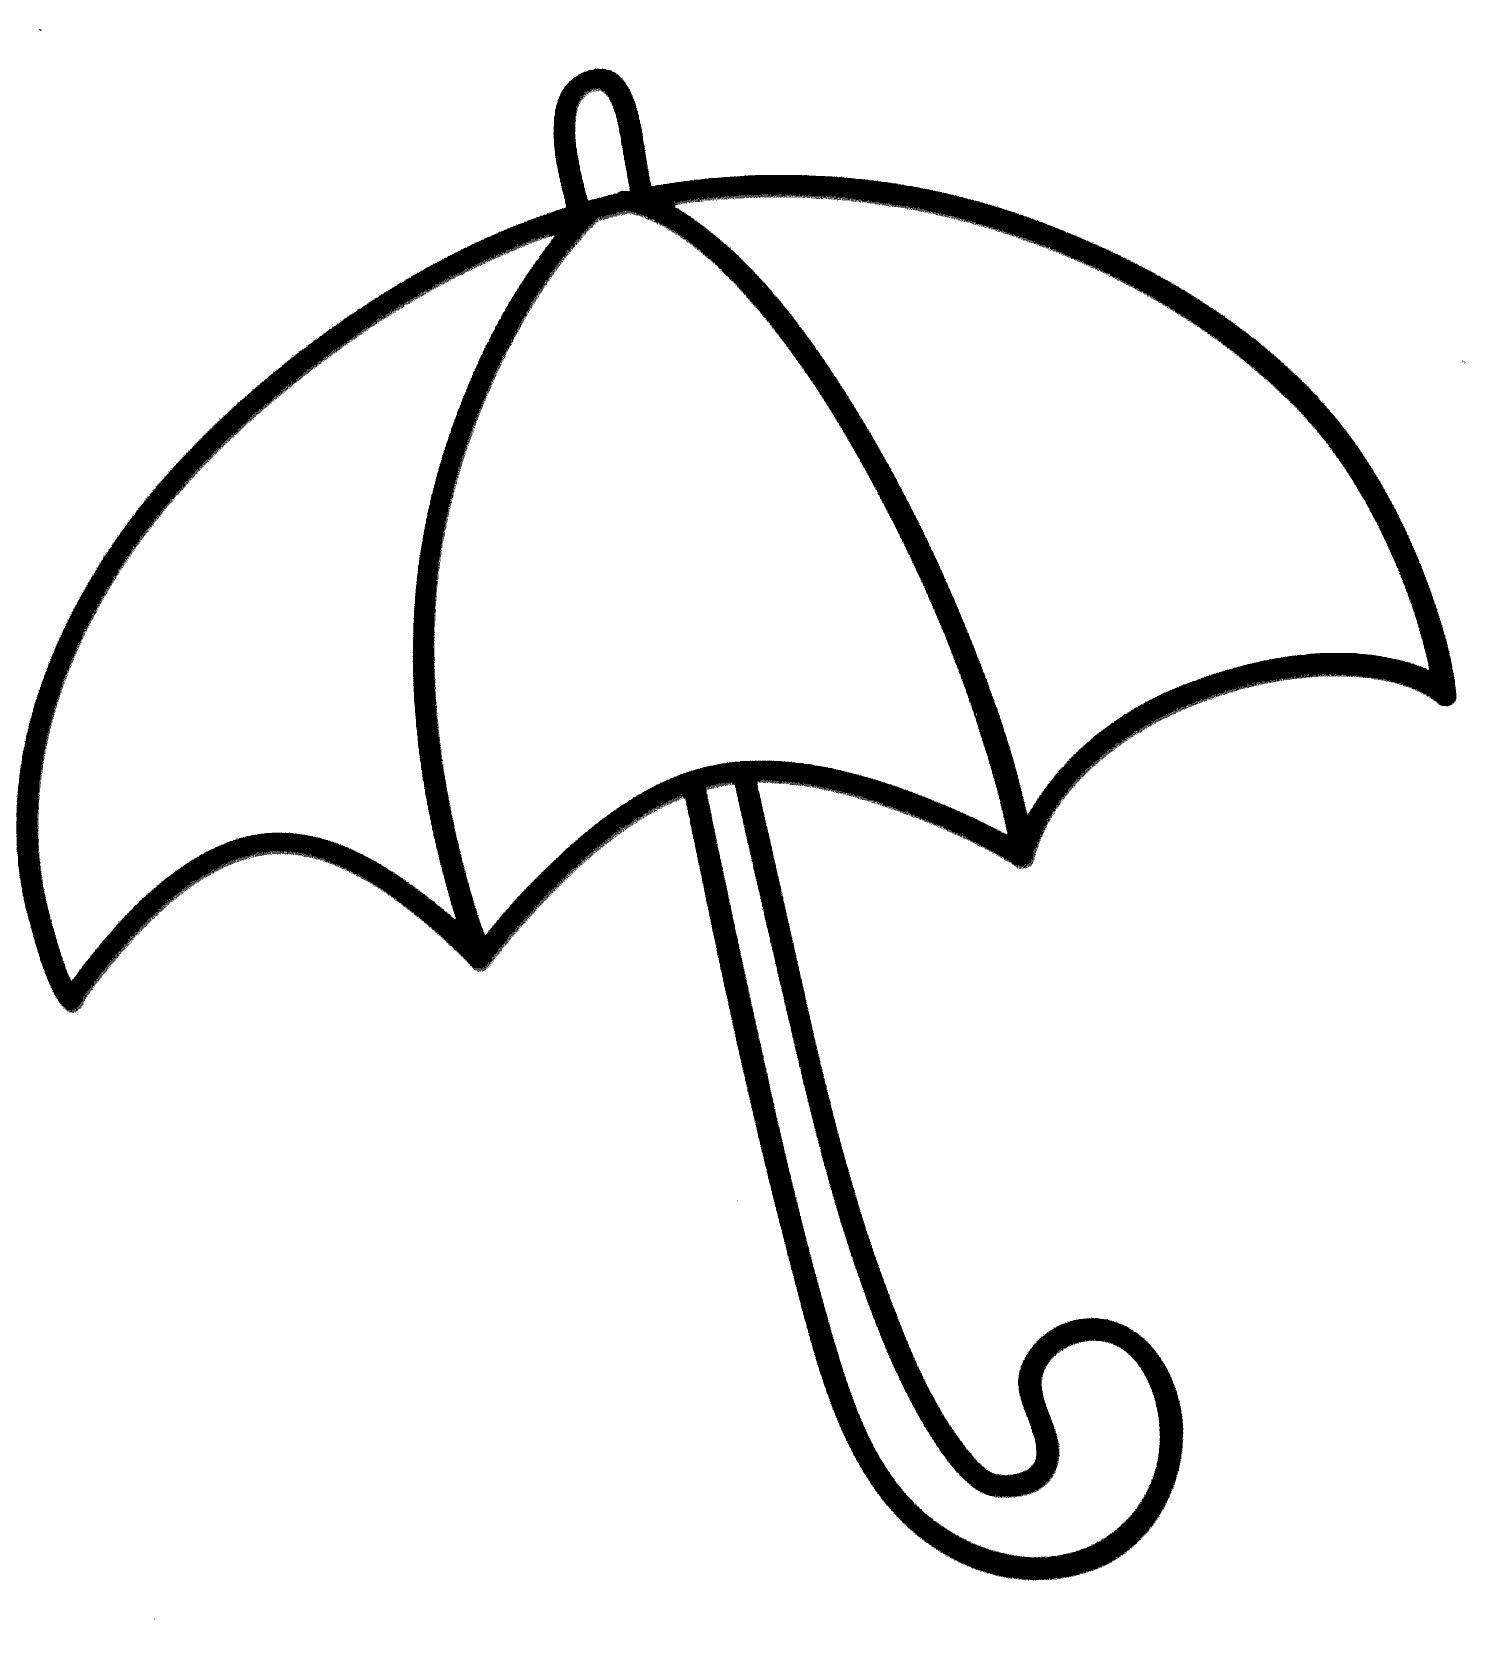 umbrella coloring page - umbrella coloring pages